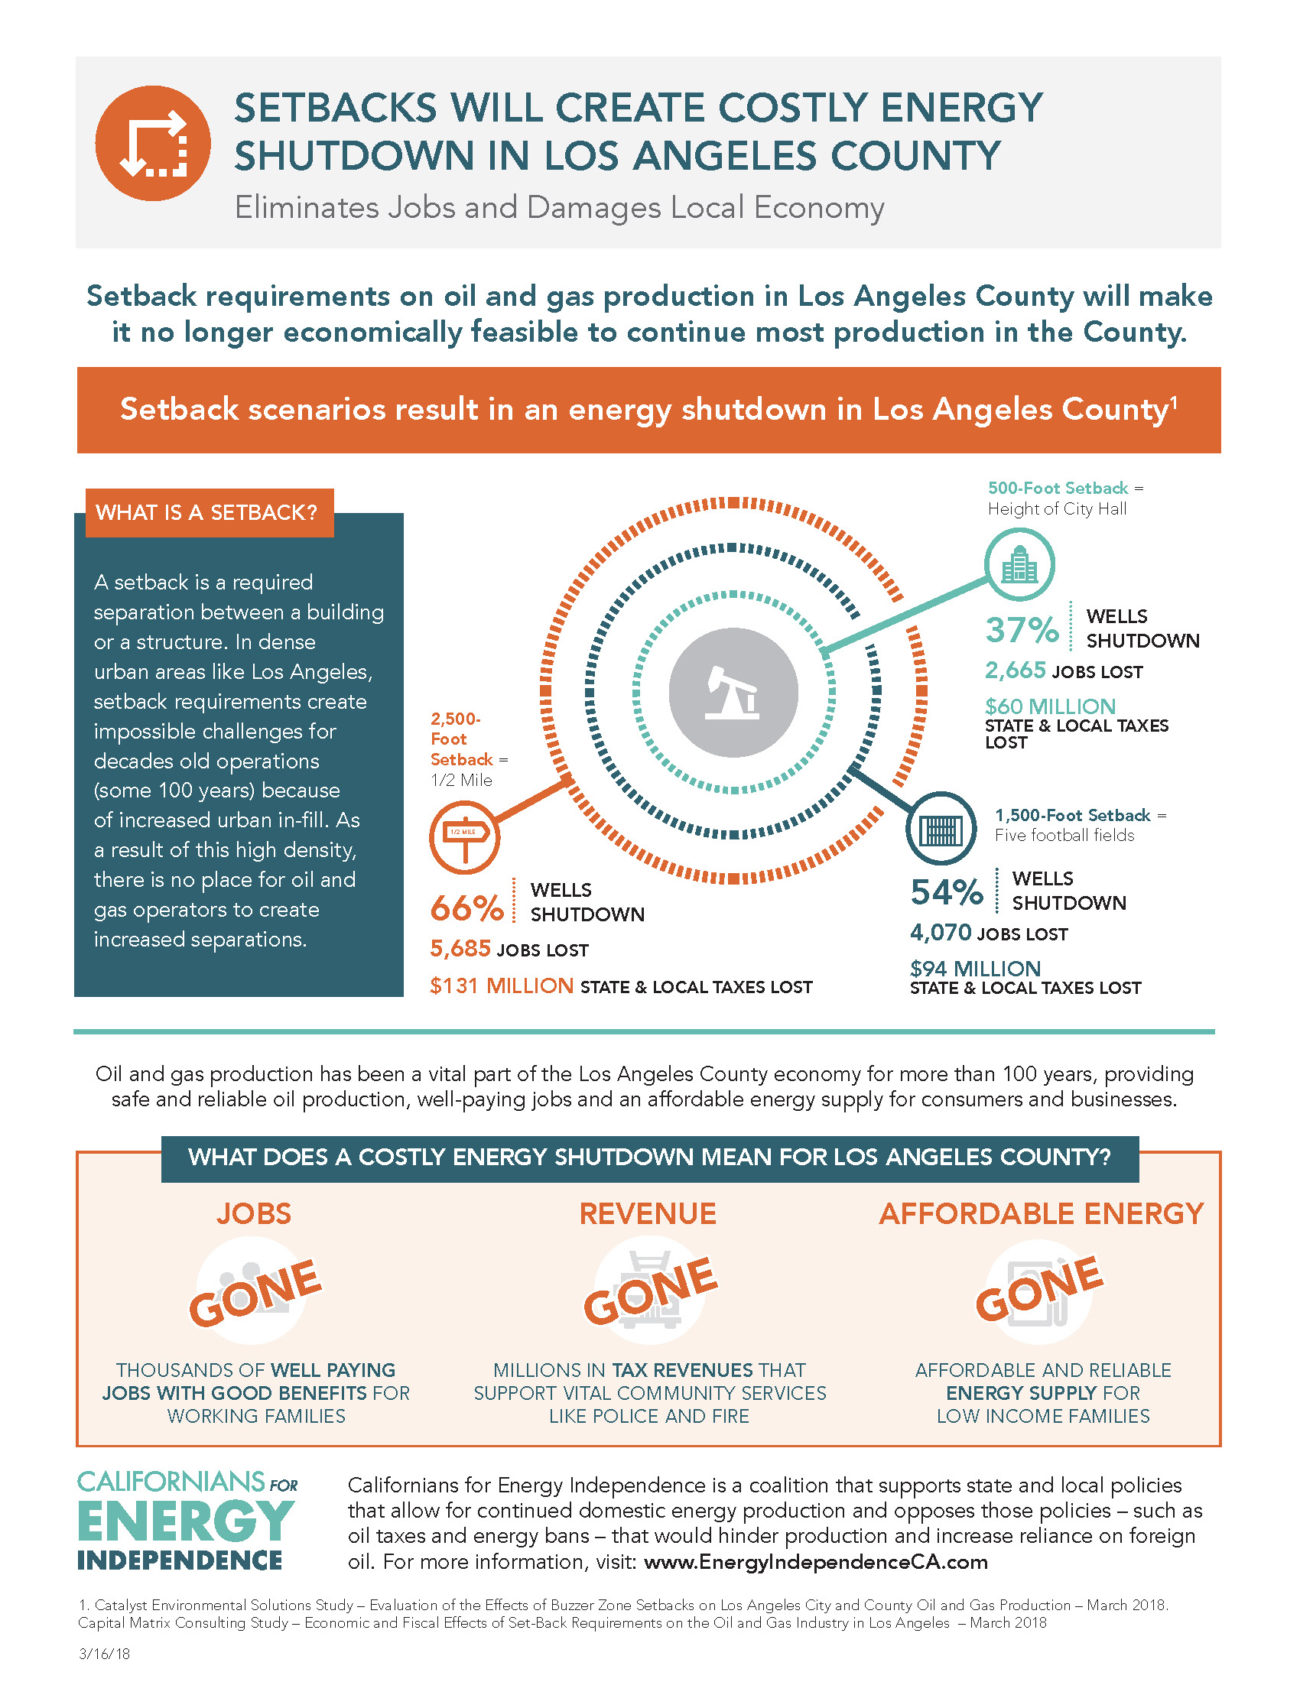 Effects of Setback Proposals on LA County